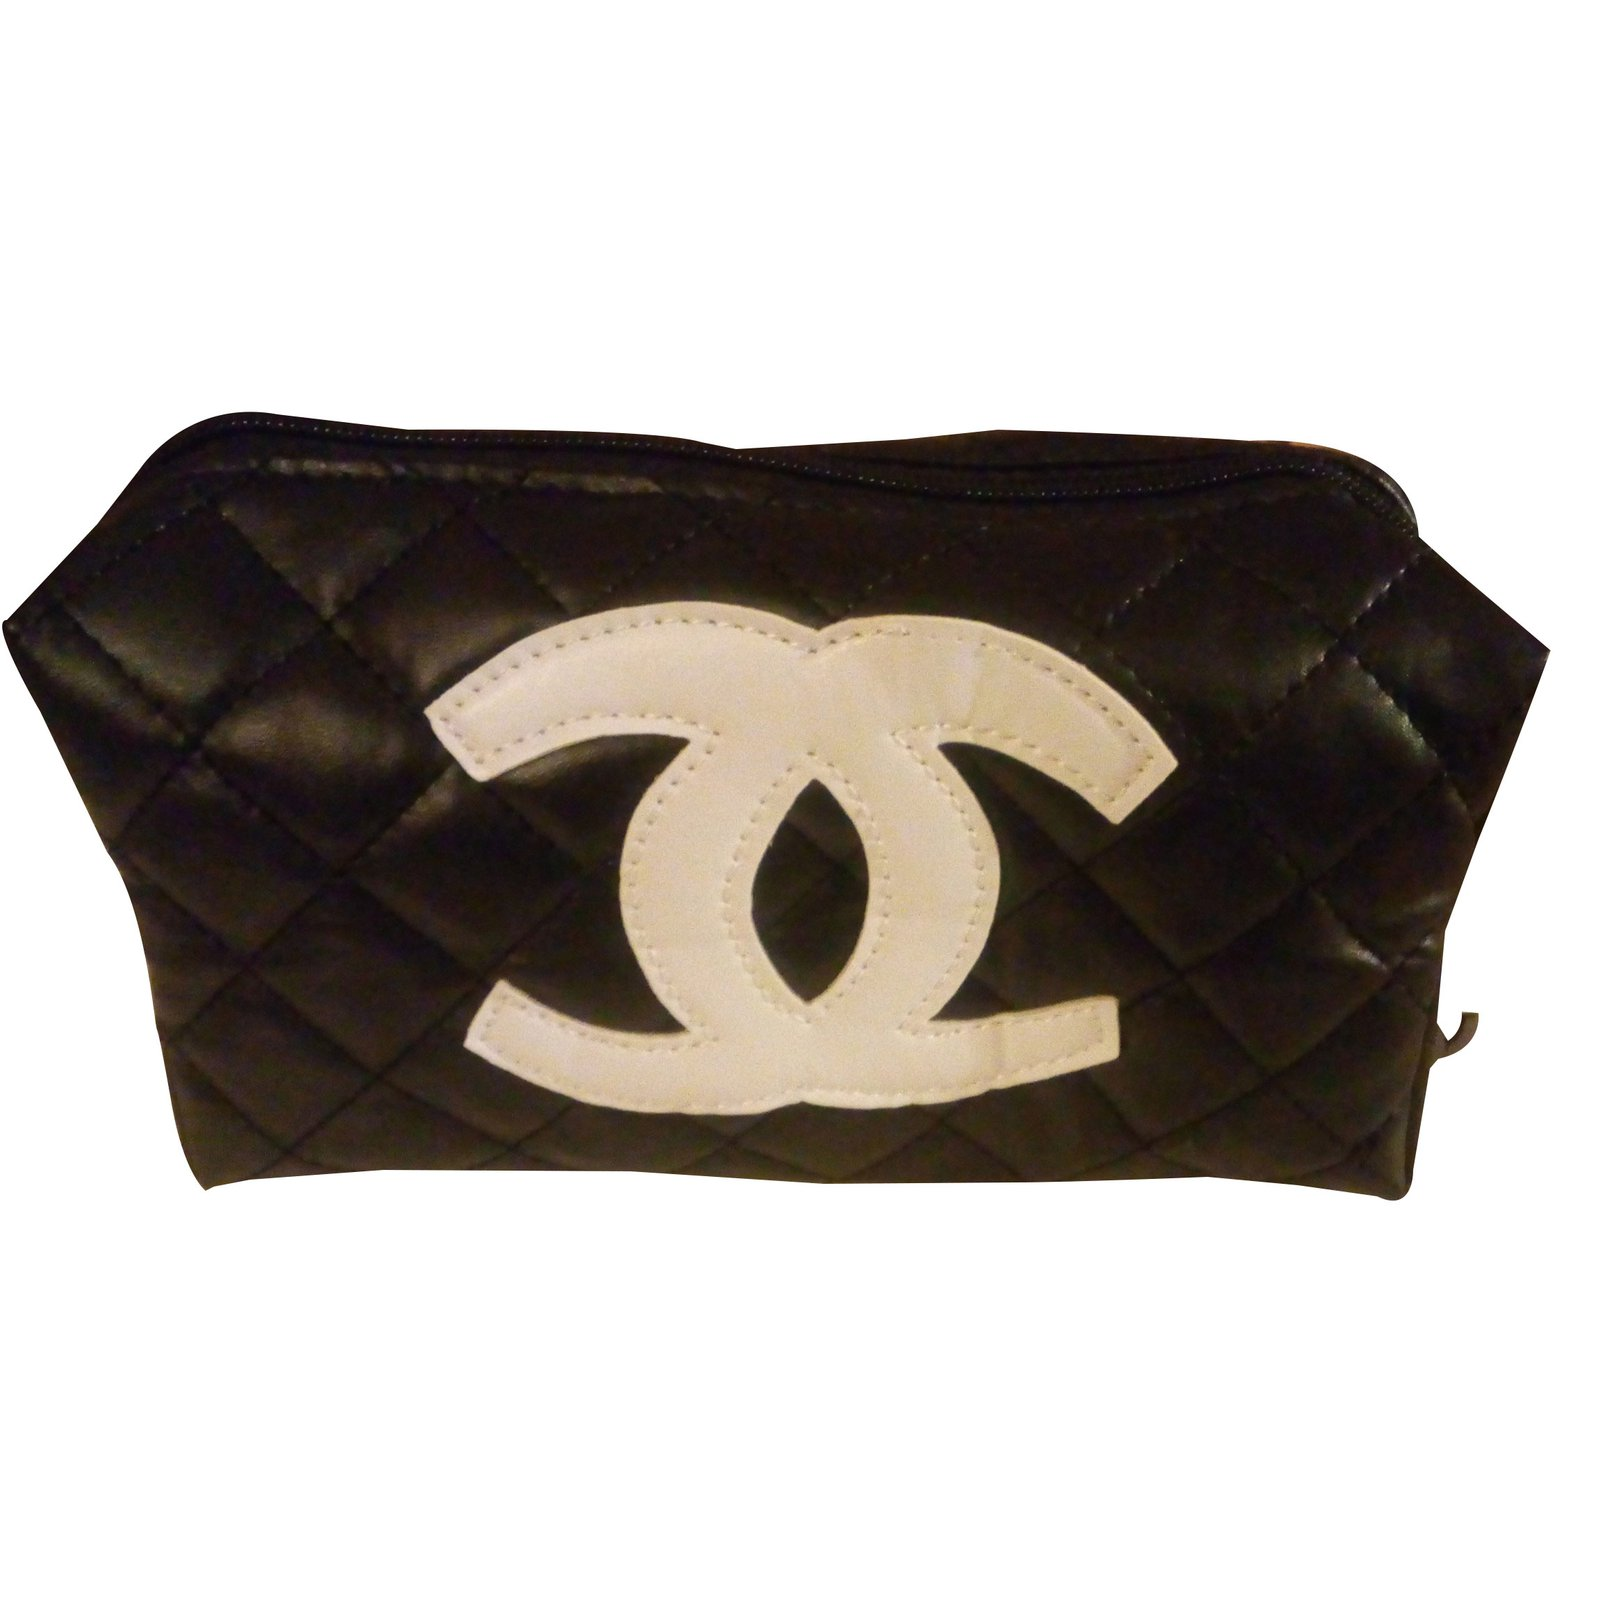 Chanel Makeup Bag Vip Gifts Plastic Black Ref 27410